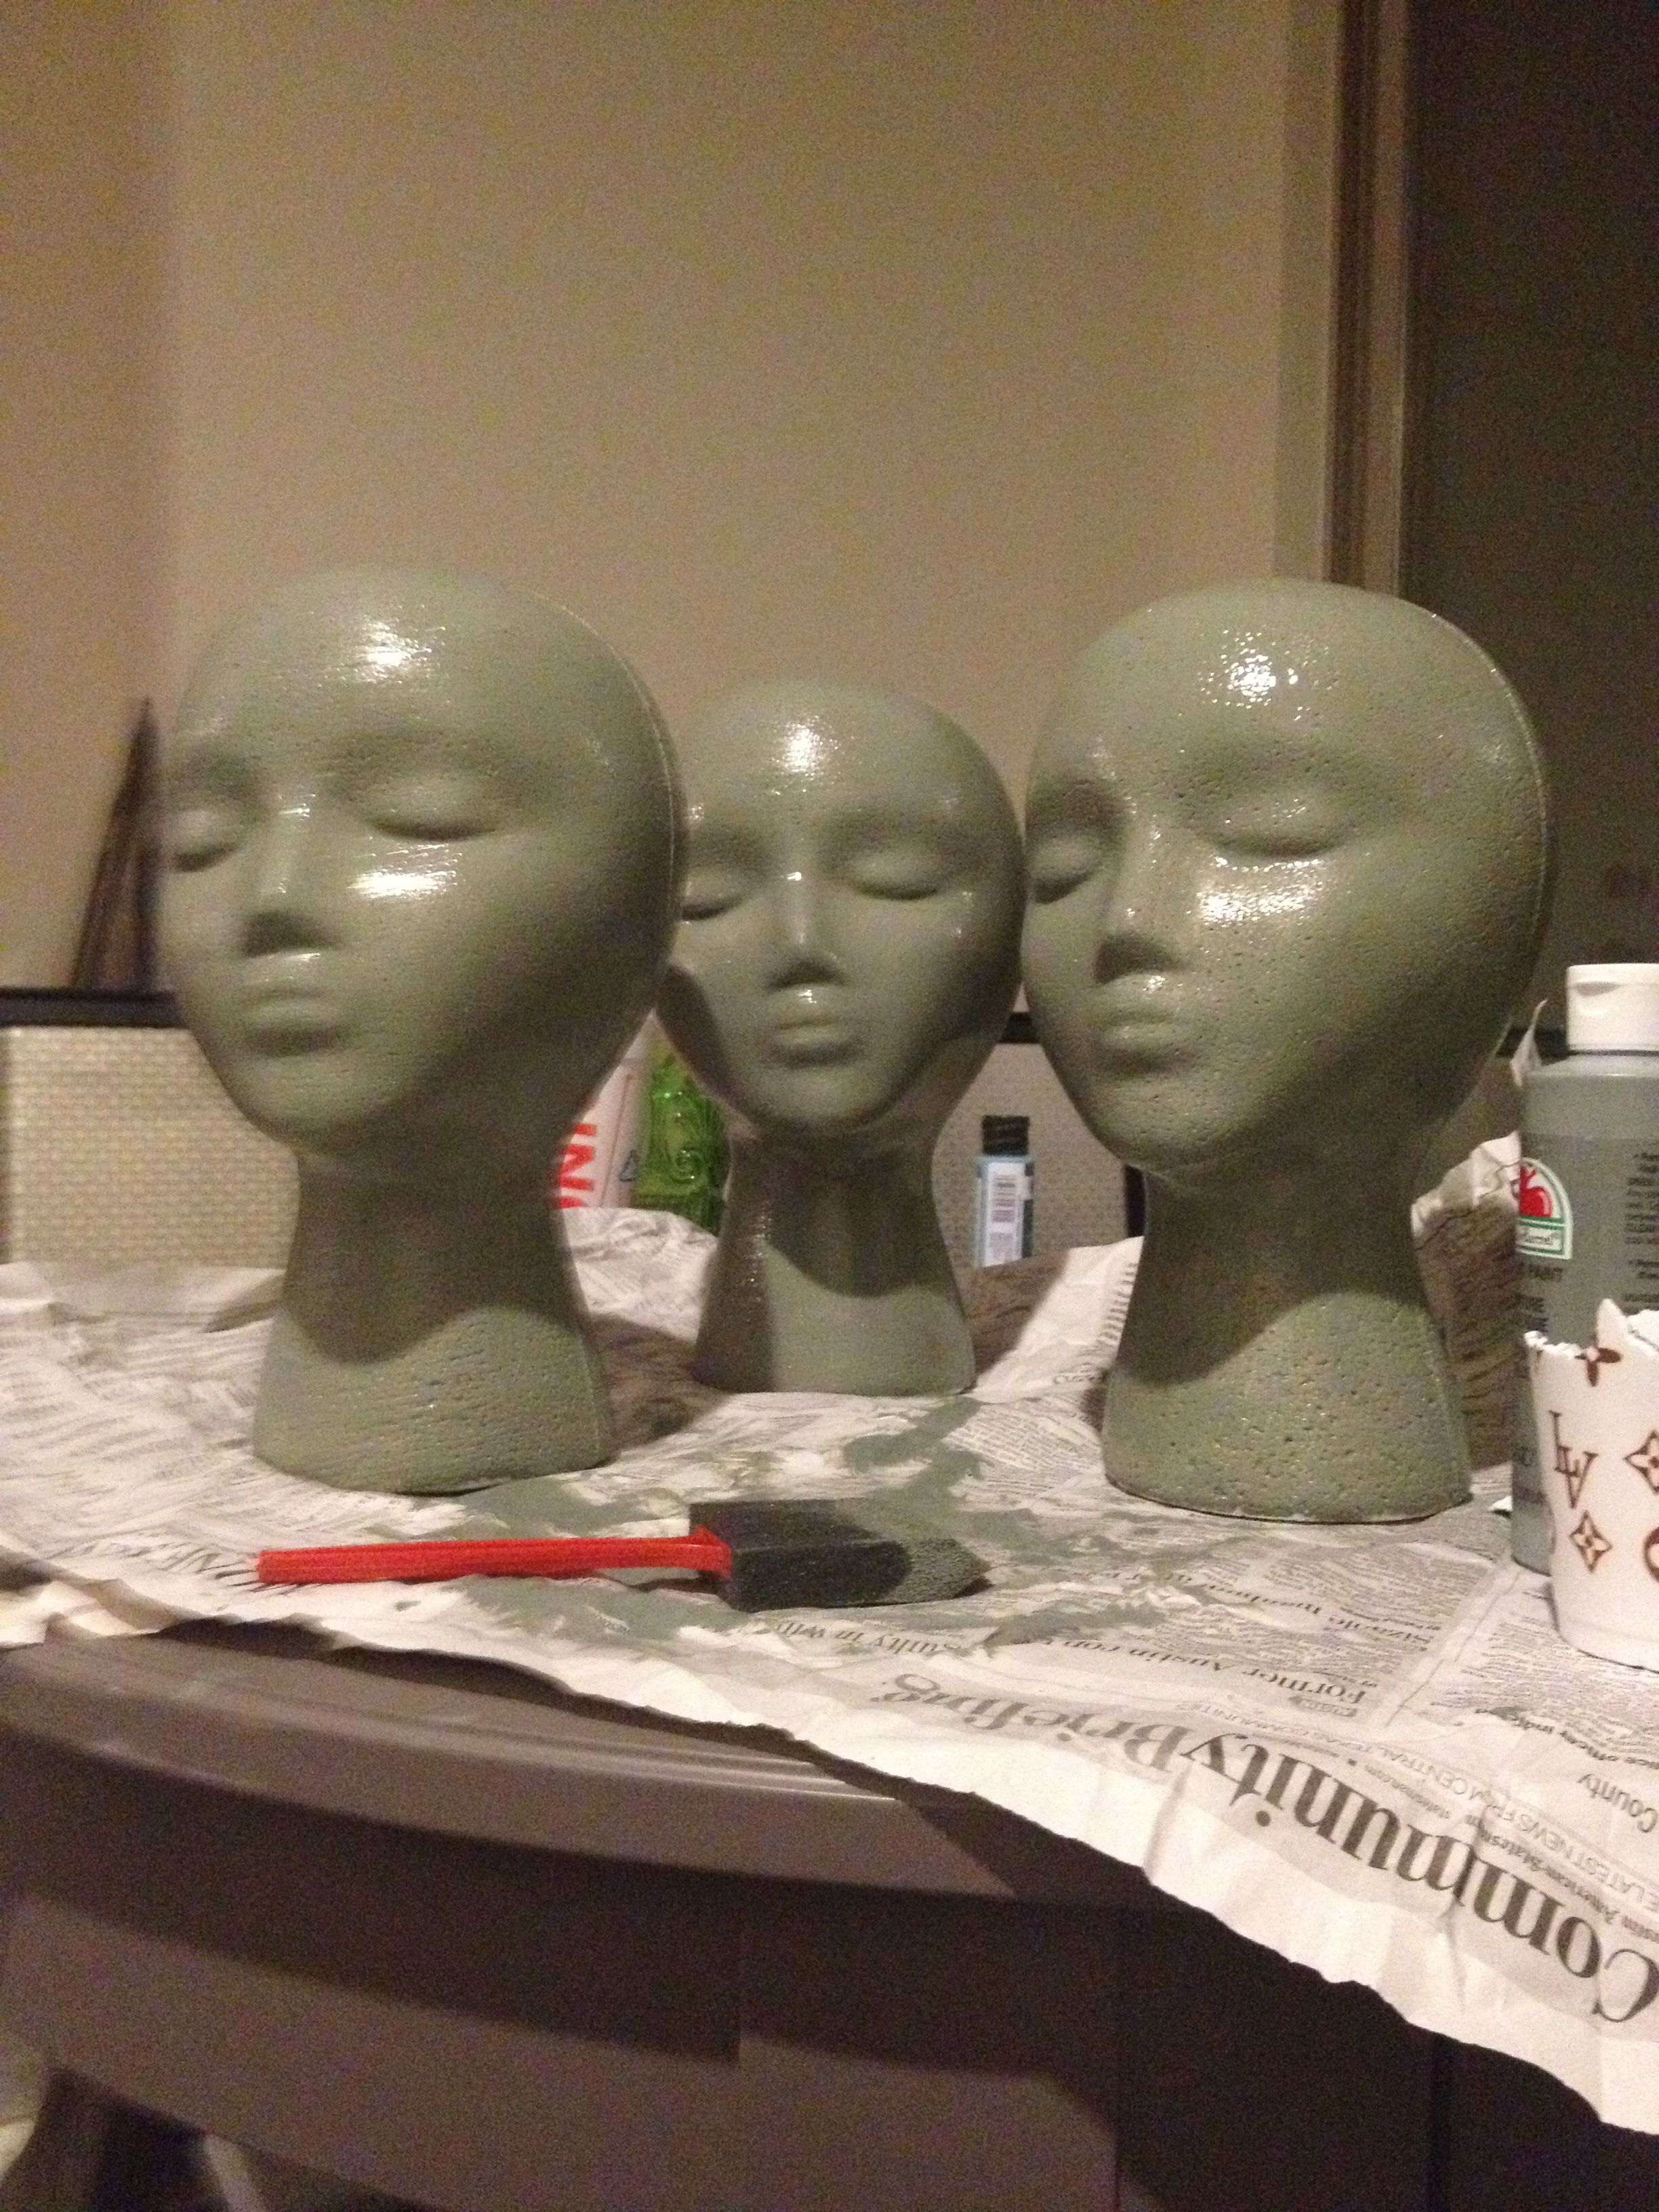 Painting Styrofoam Heads For Hat Display Hat Display Ideas Craft Show Displays Craft Show Ideas